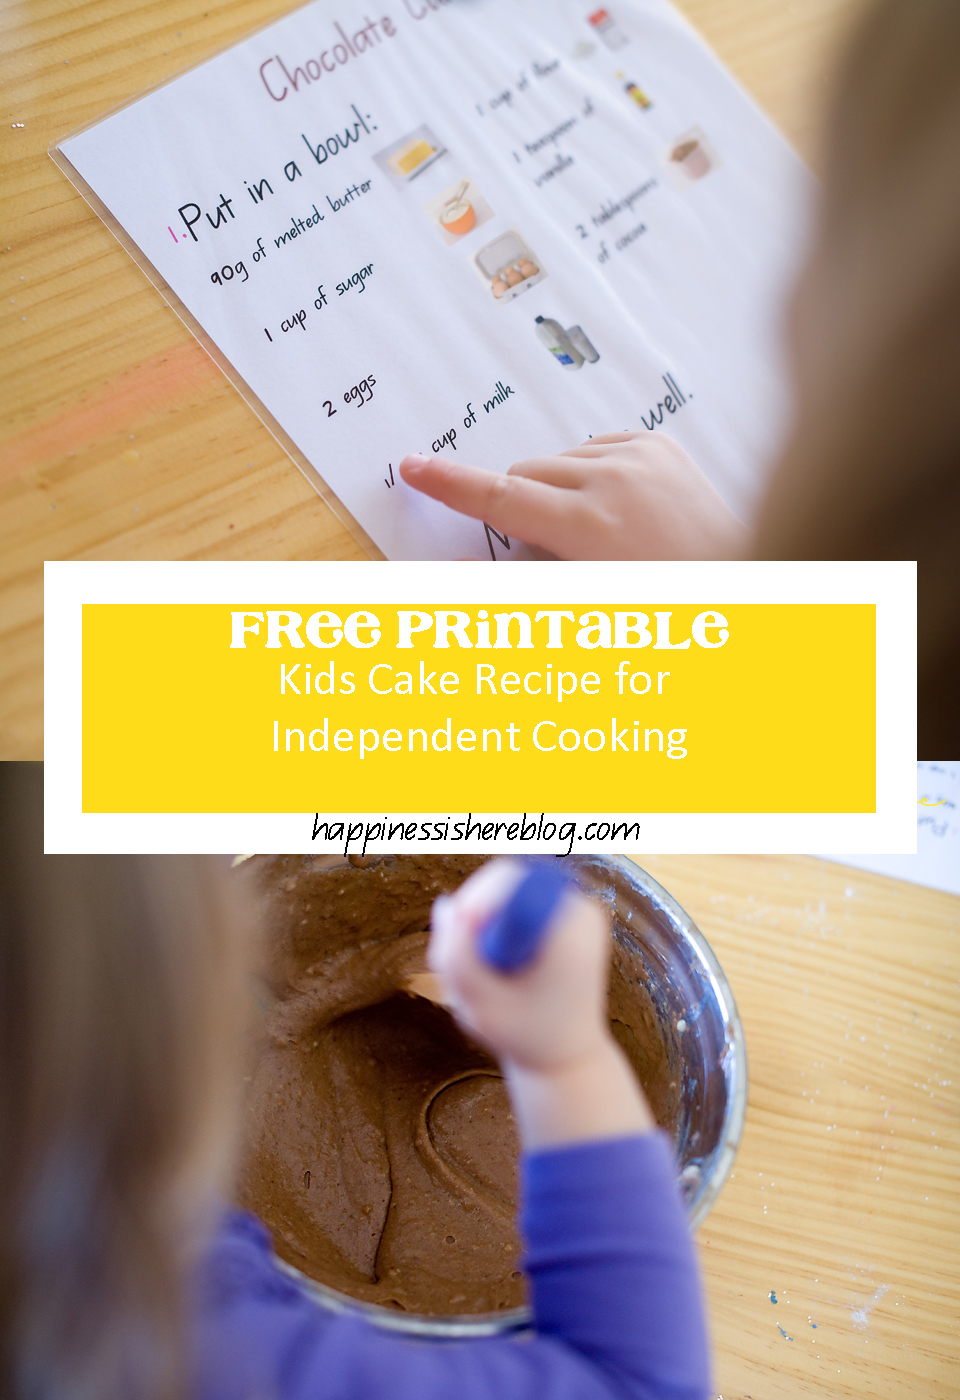 FREE PRINTABLE: Kids recipe for independent cooking | Happiness is here www.happinessishereblog.com